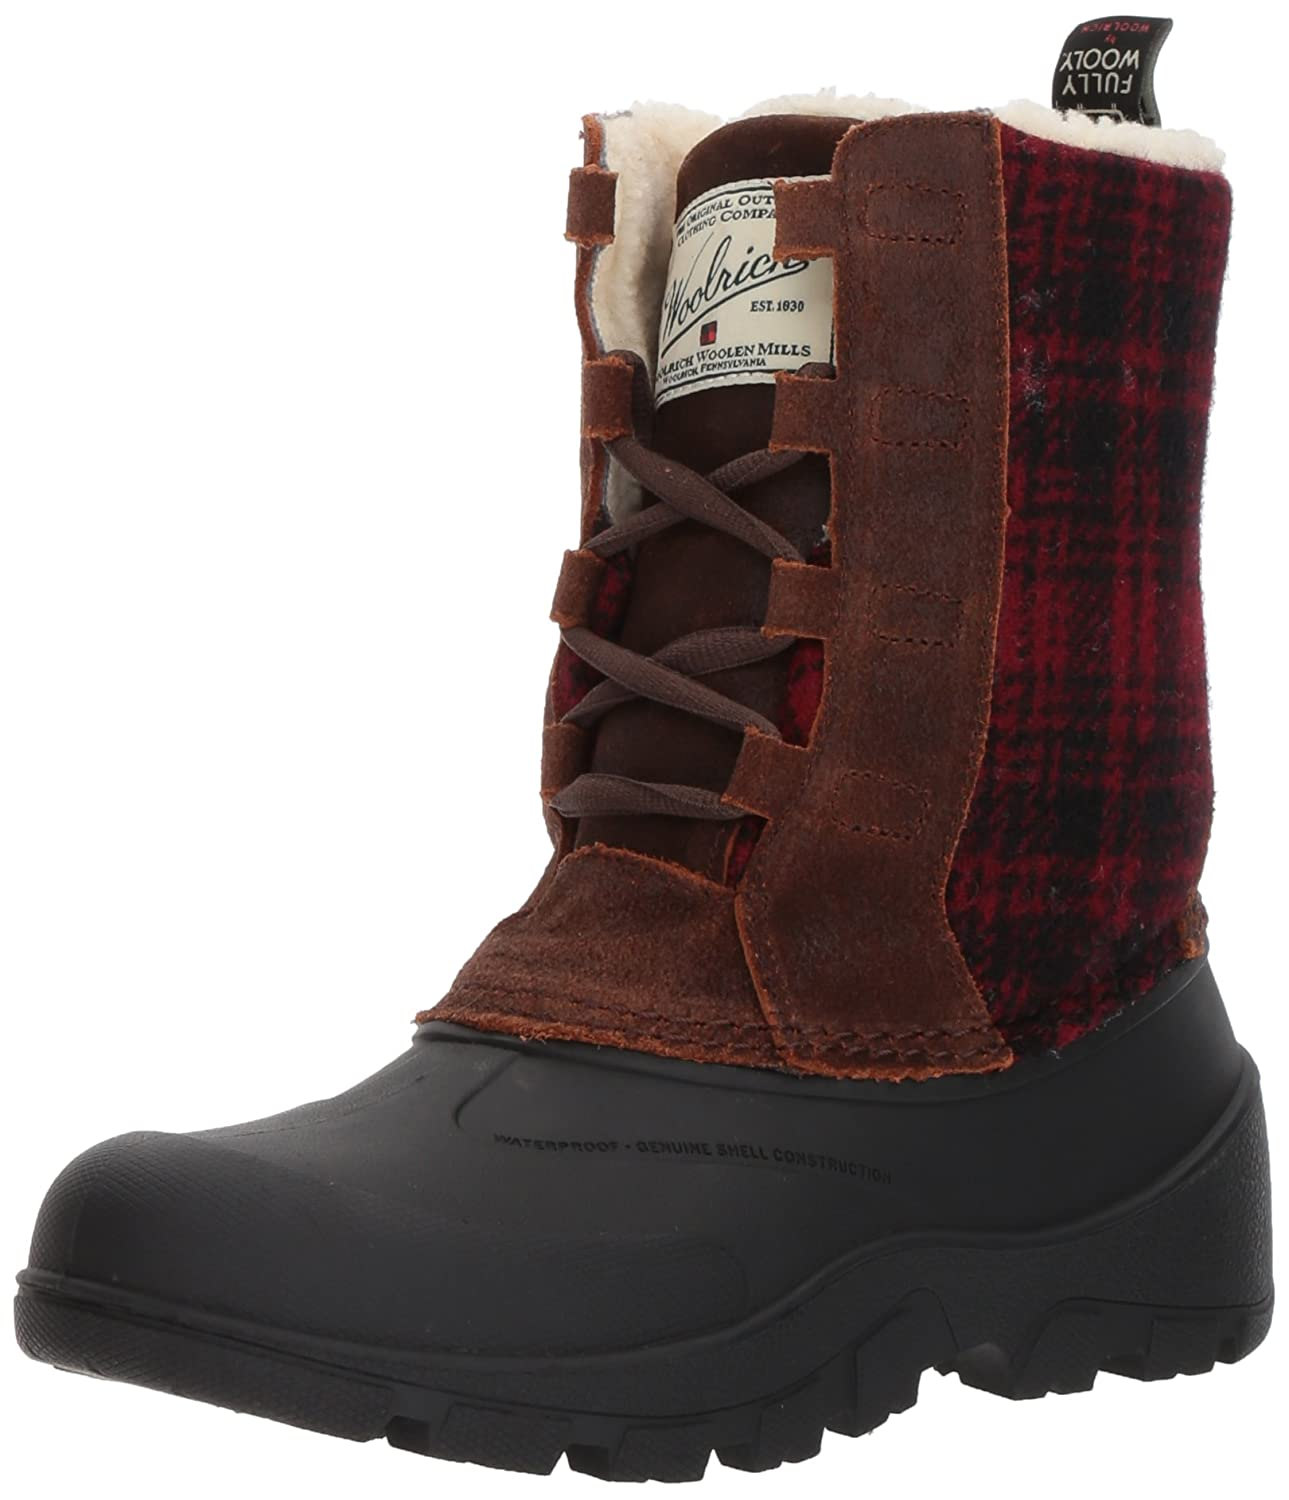 Woolrich Women's Fw Tundracat Snow Boot B01N4DC29P 7 M US|Coconut/Red Hunting Plaid